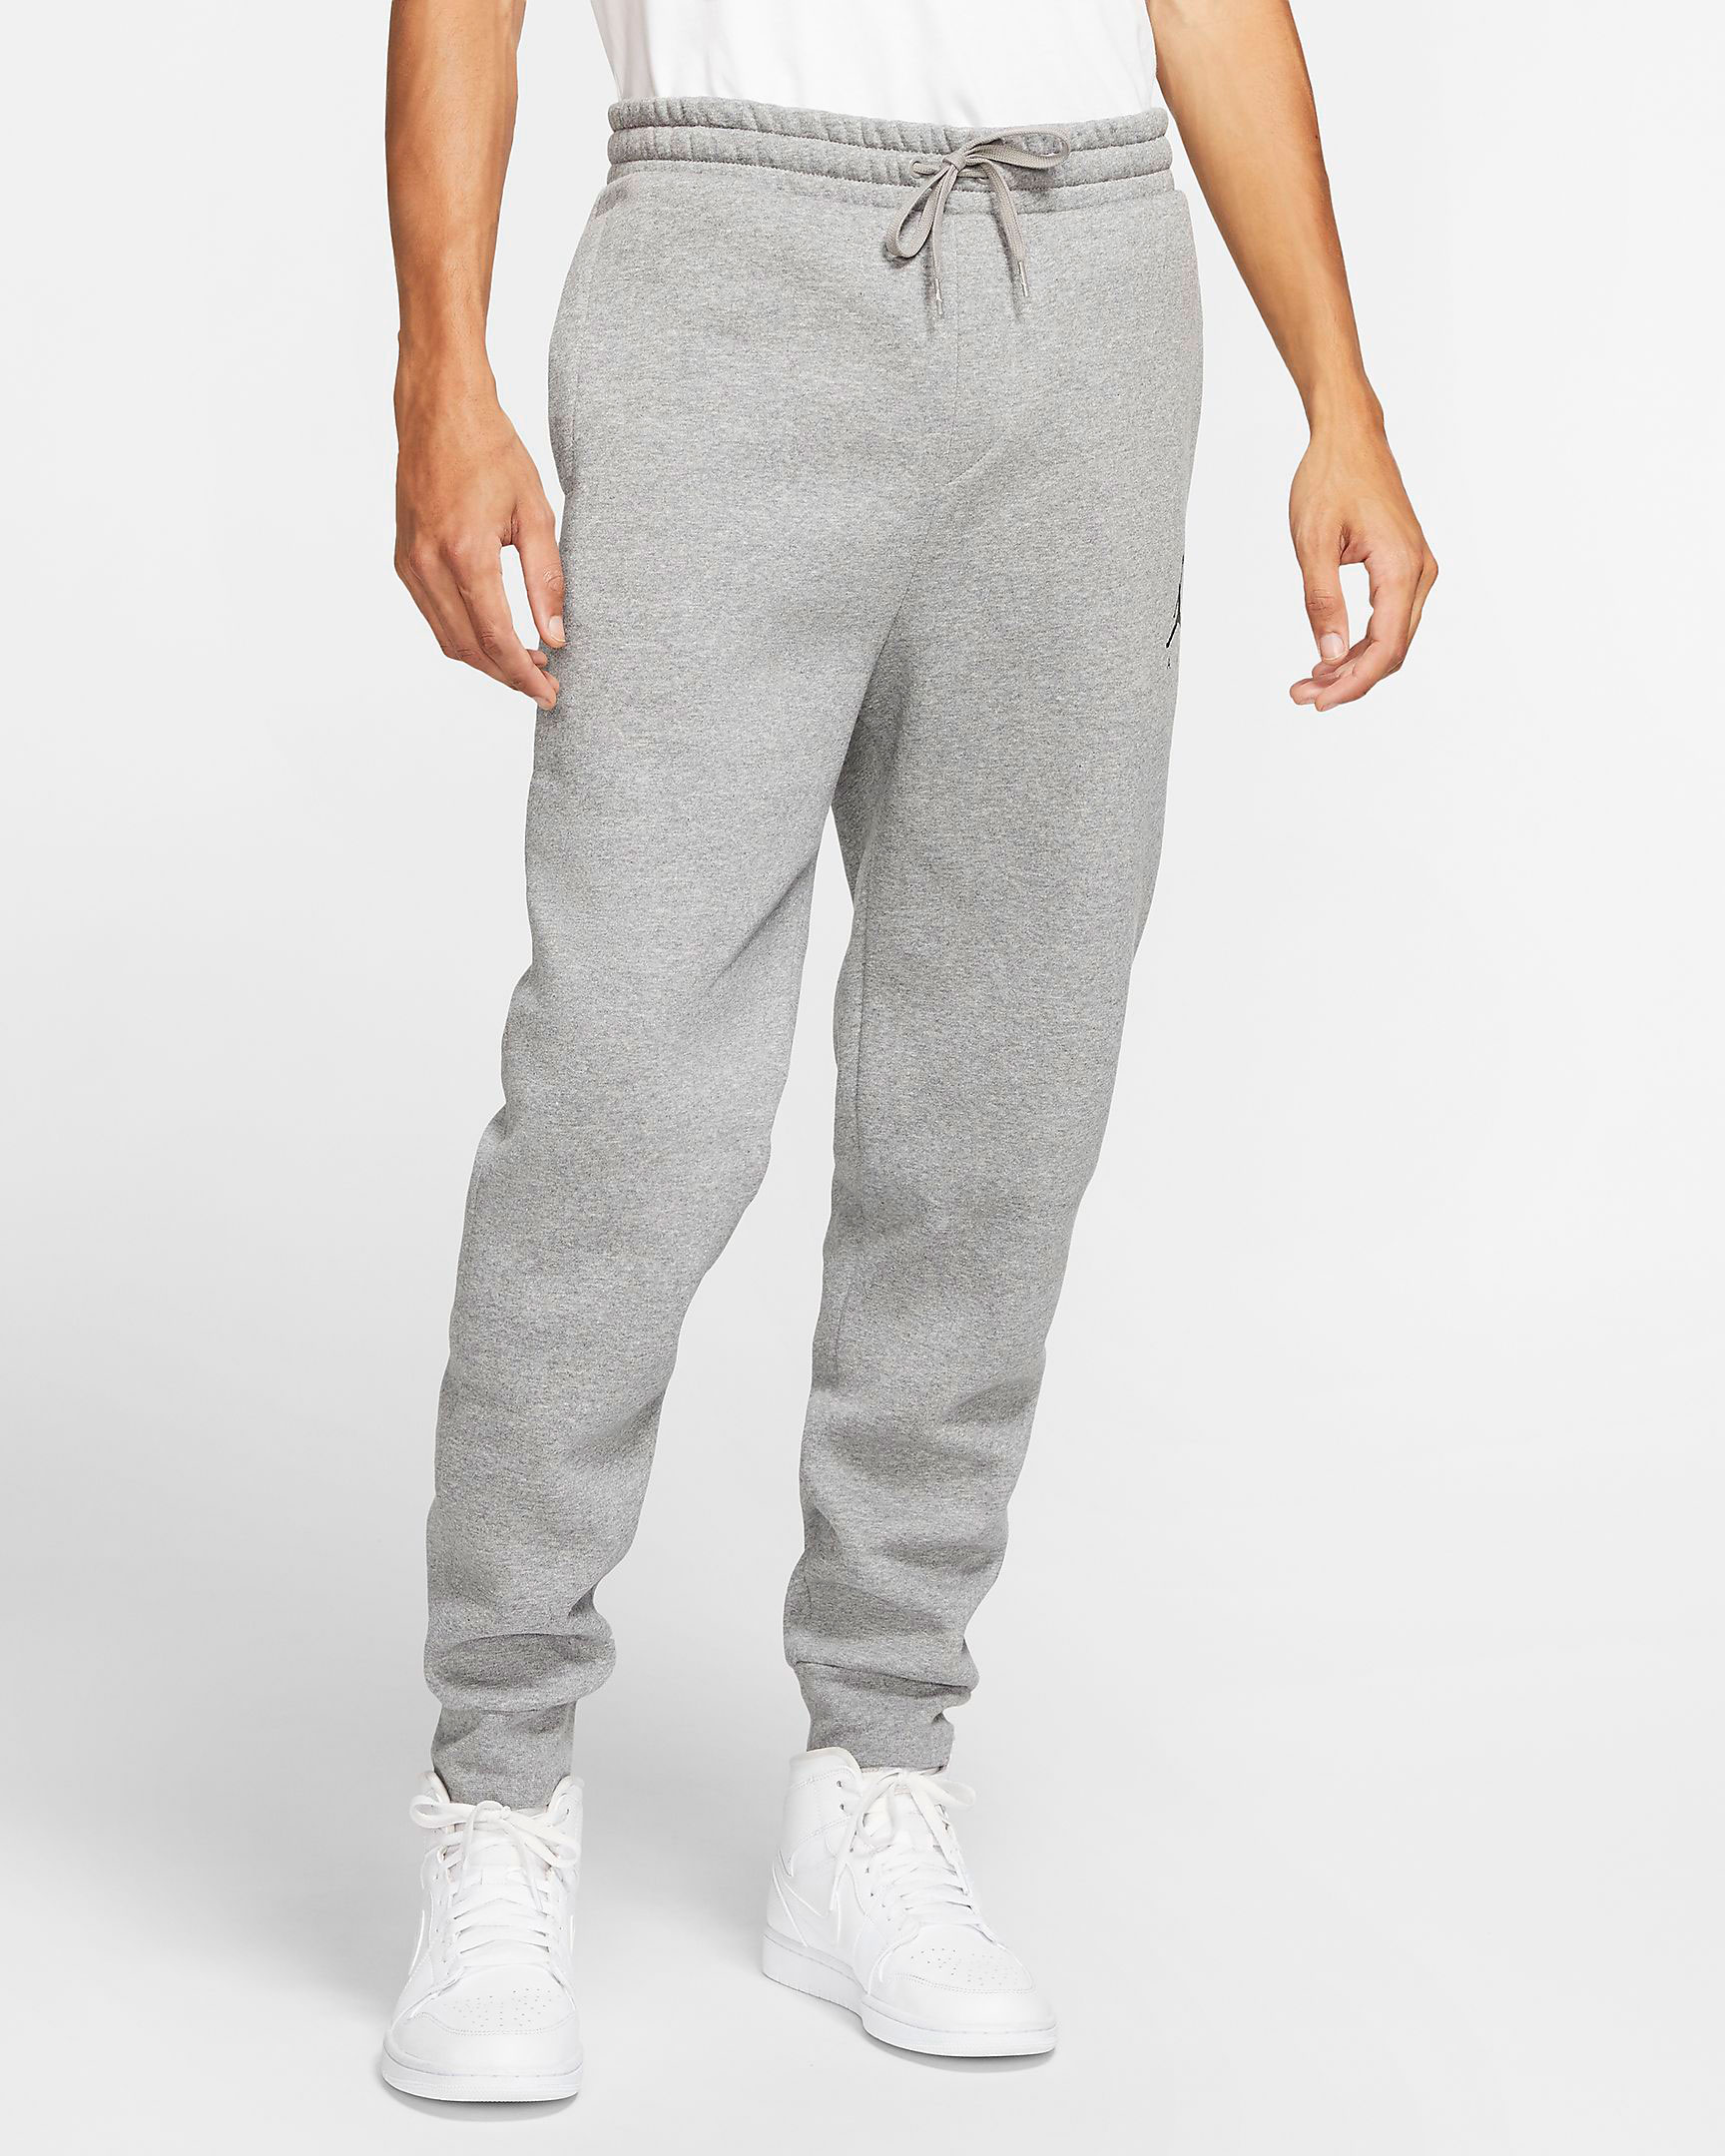 jordan-jumpman-pants-grey-2